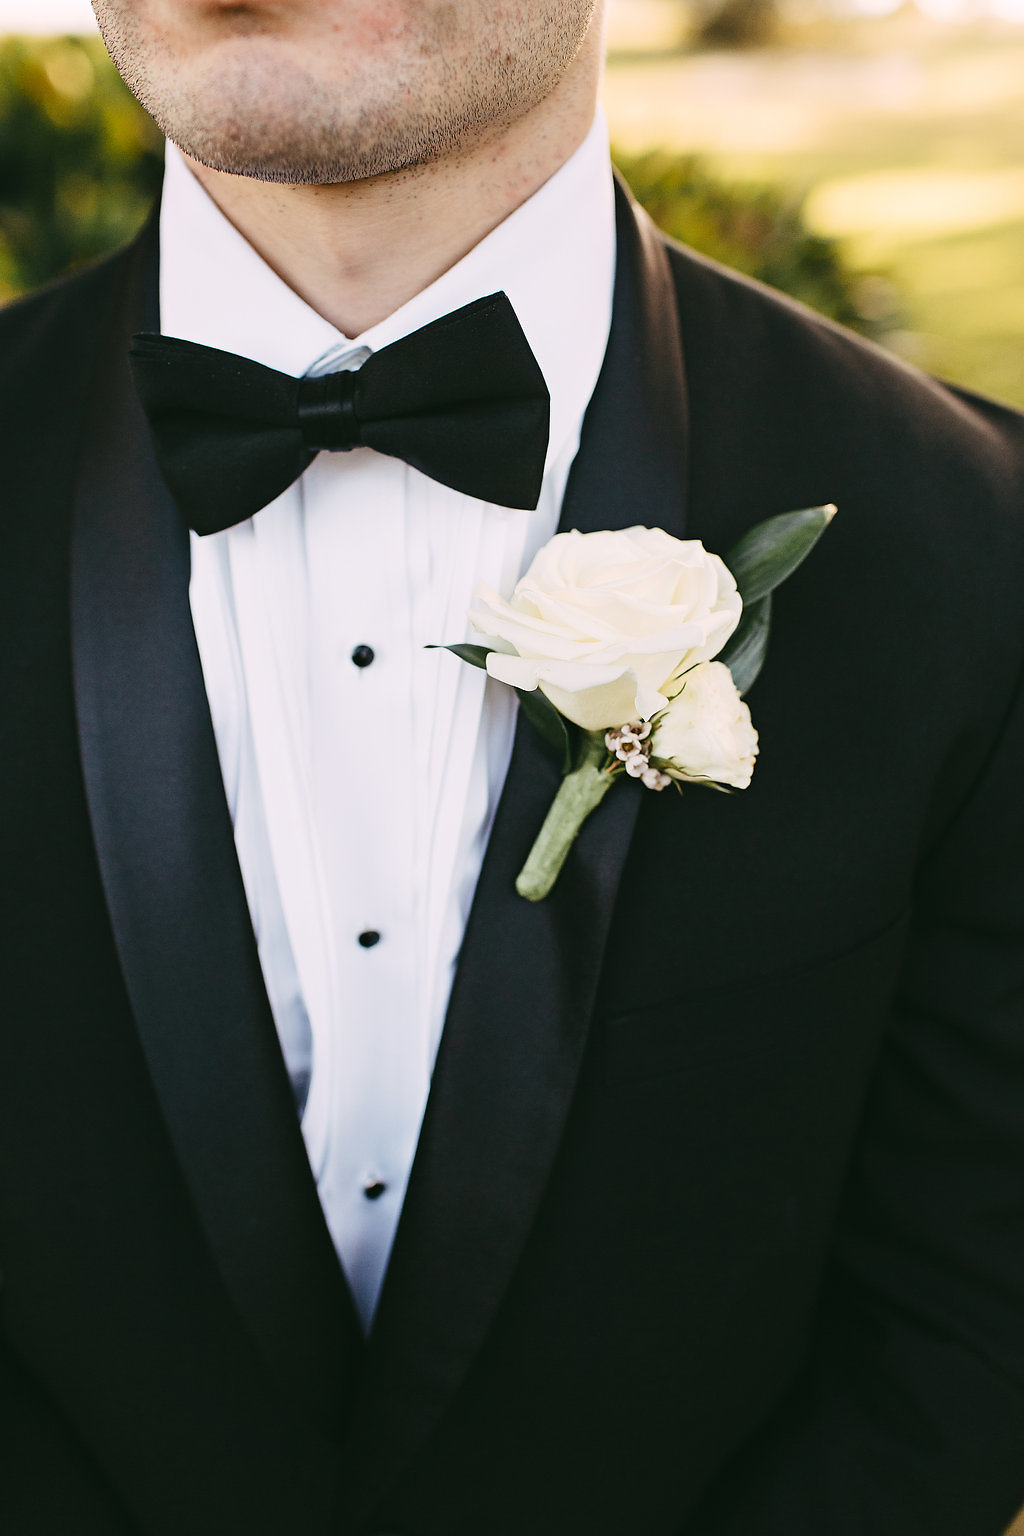 The Proper Way To Put On A Boutonniere Southern Living